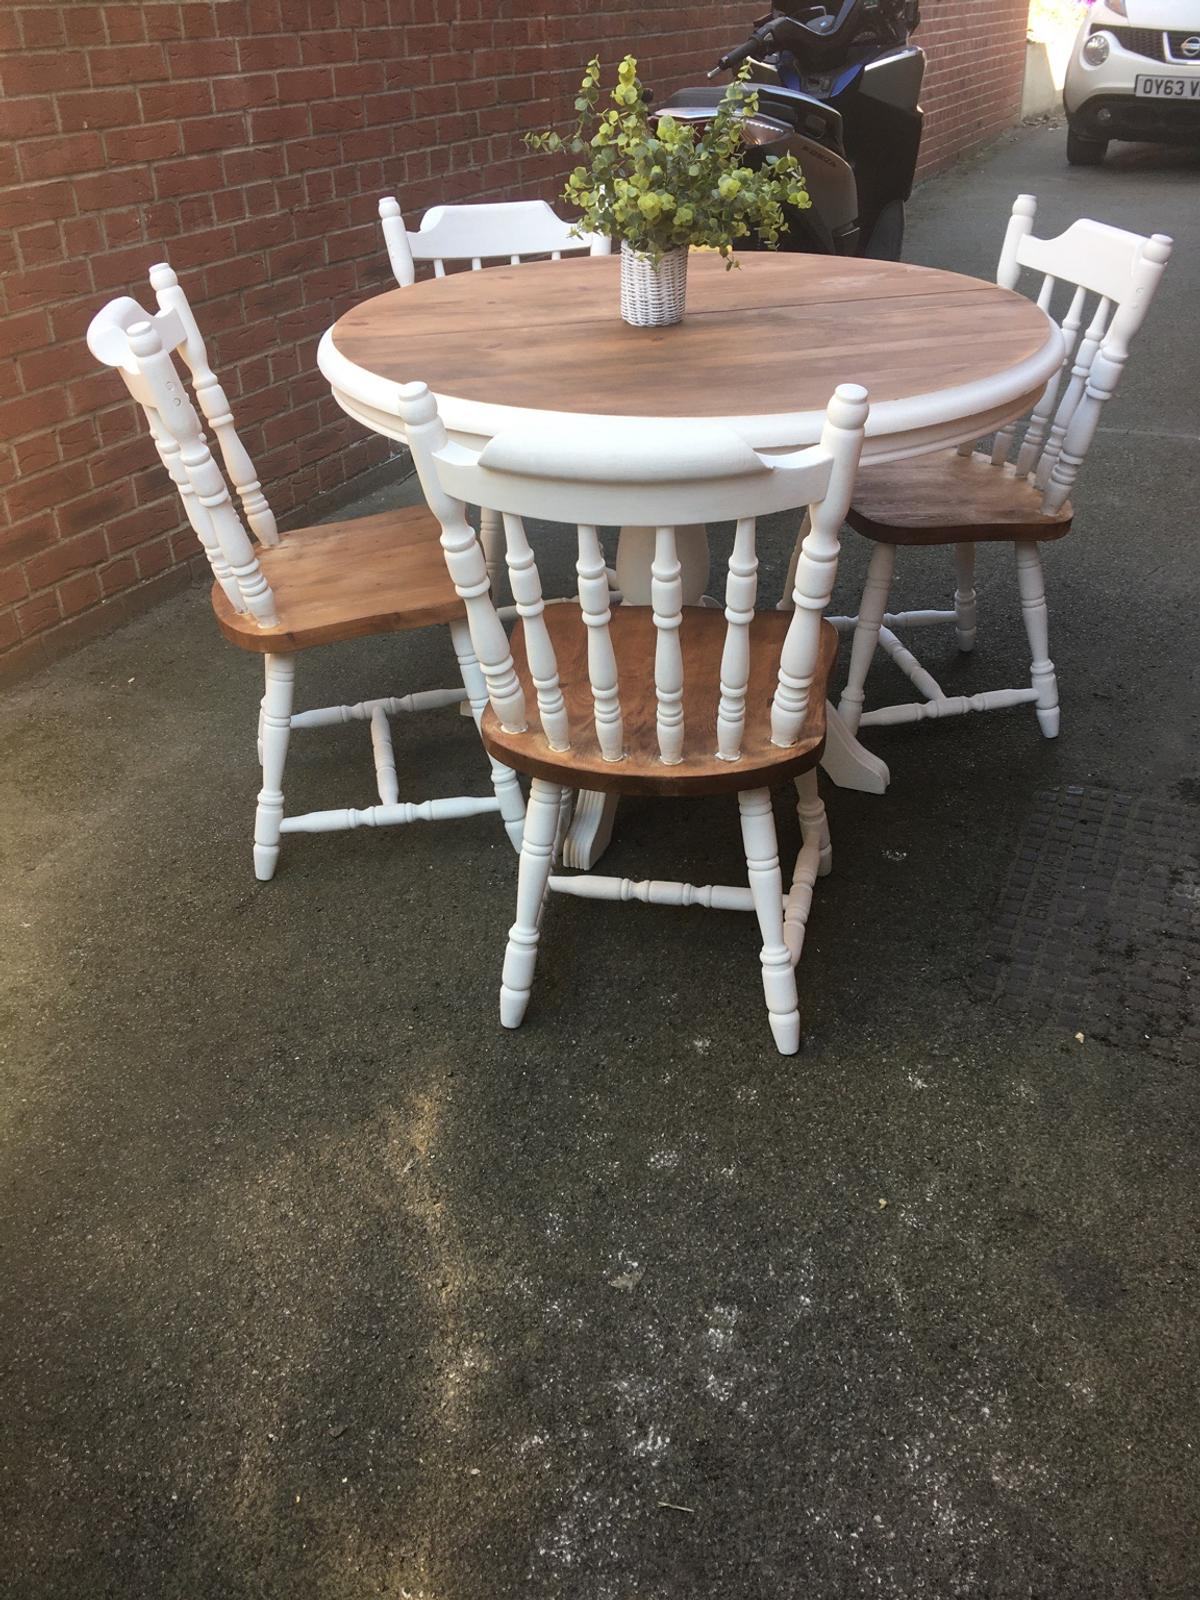 Shabby chic table and chairs in white with natural wood on top and on chairs solid table in excellent condition grab a bargain